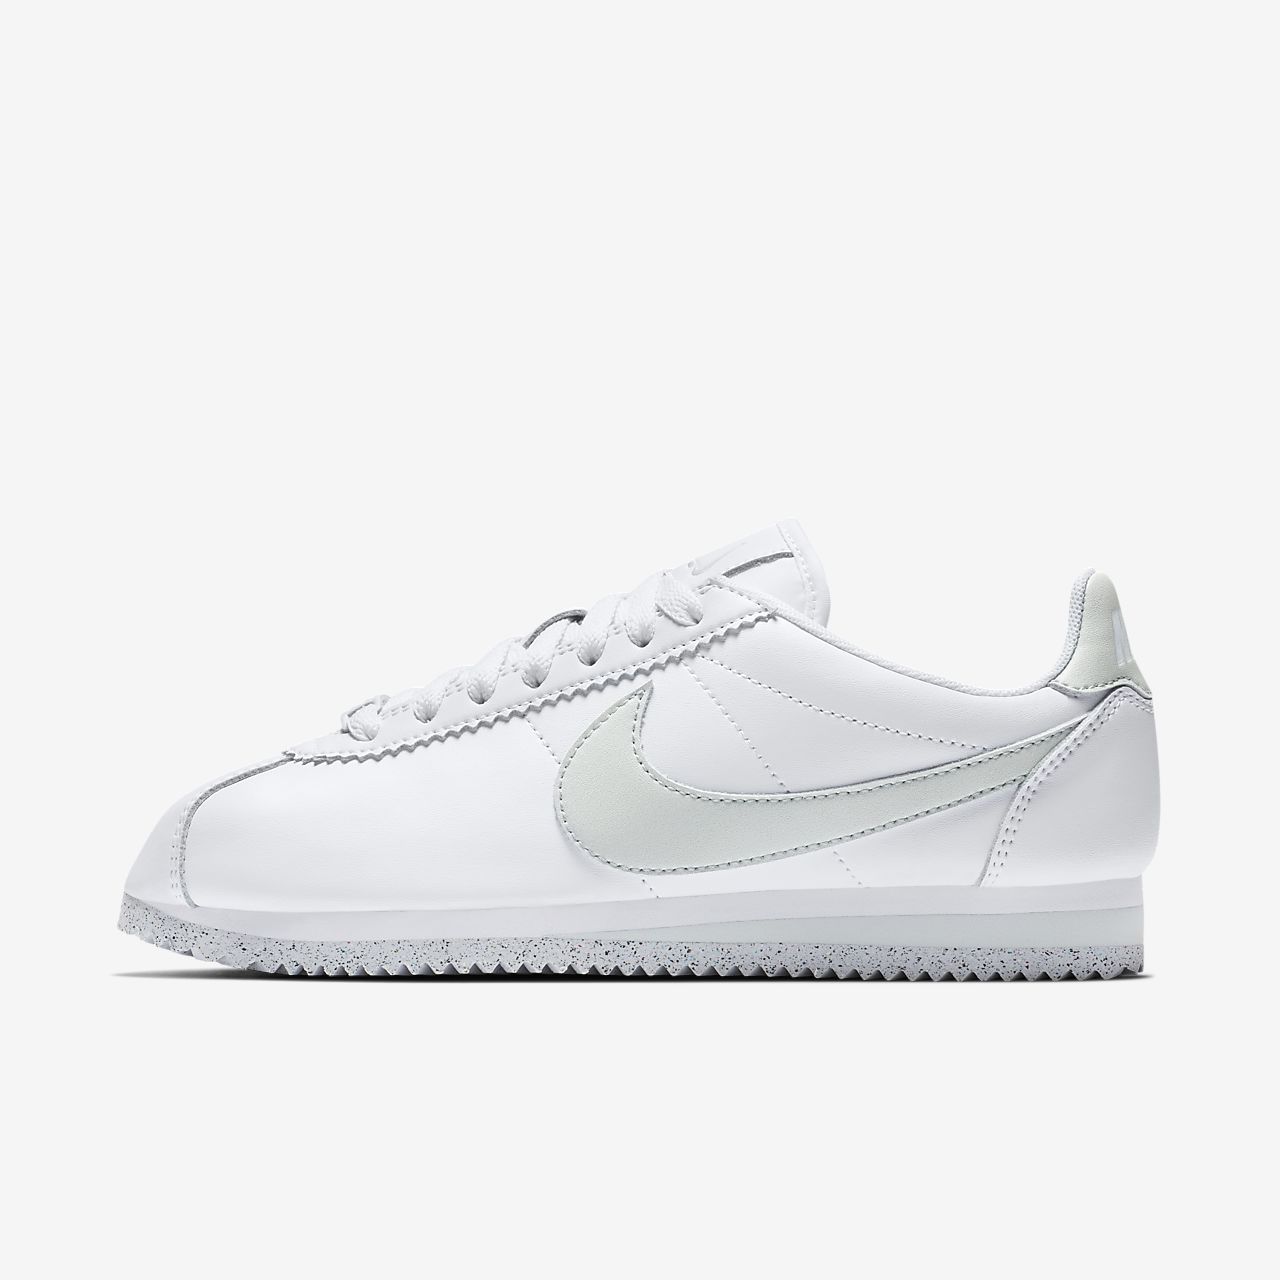 nike classic cortez leather women